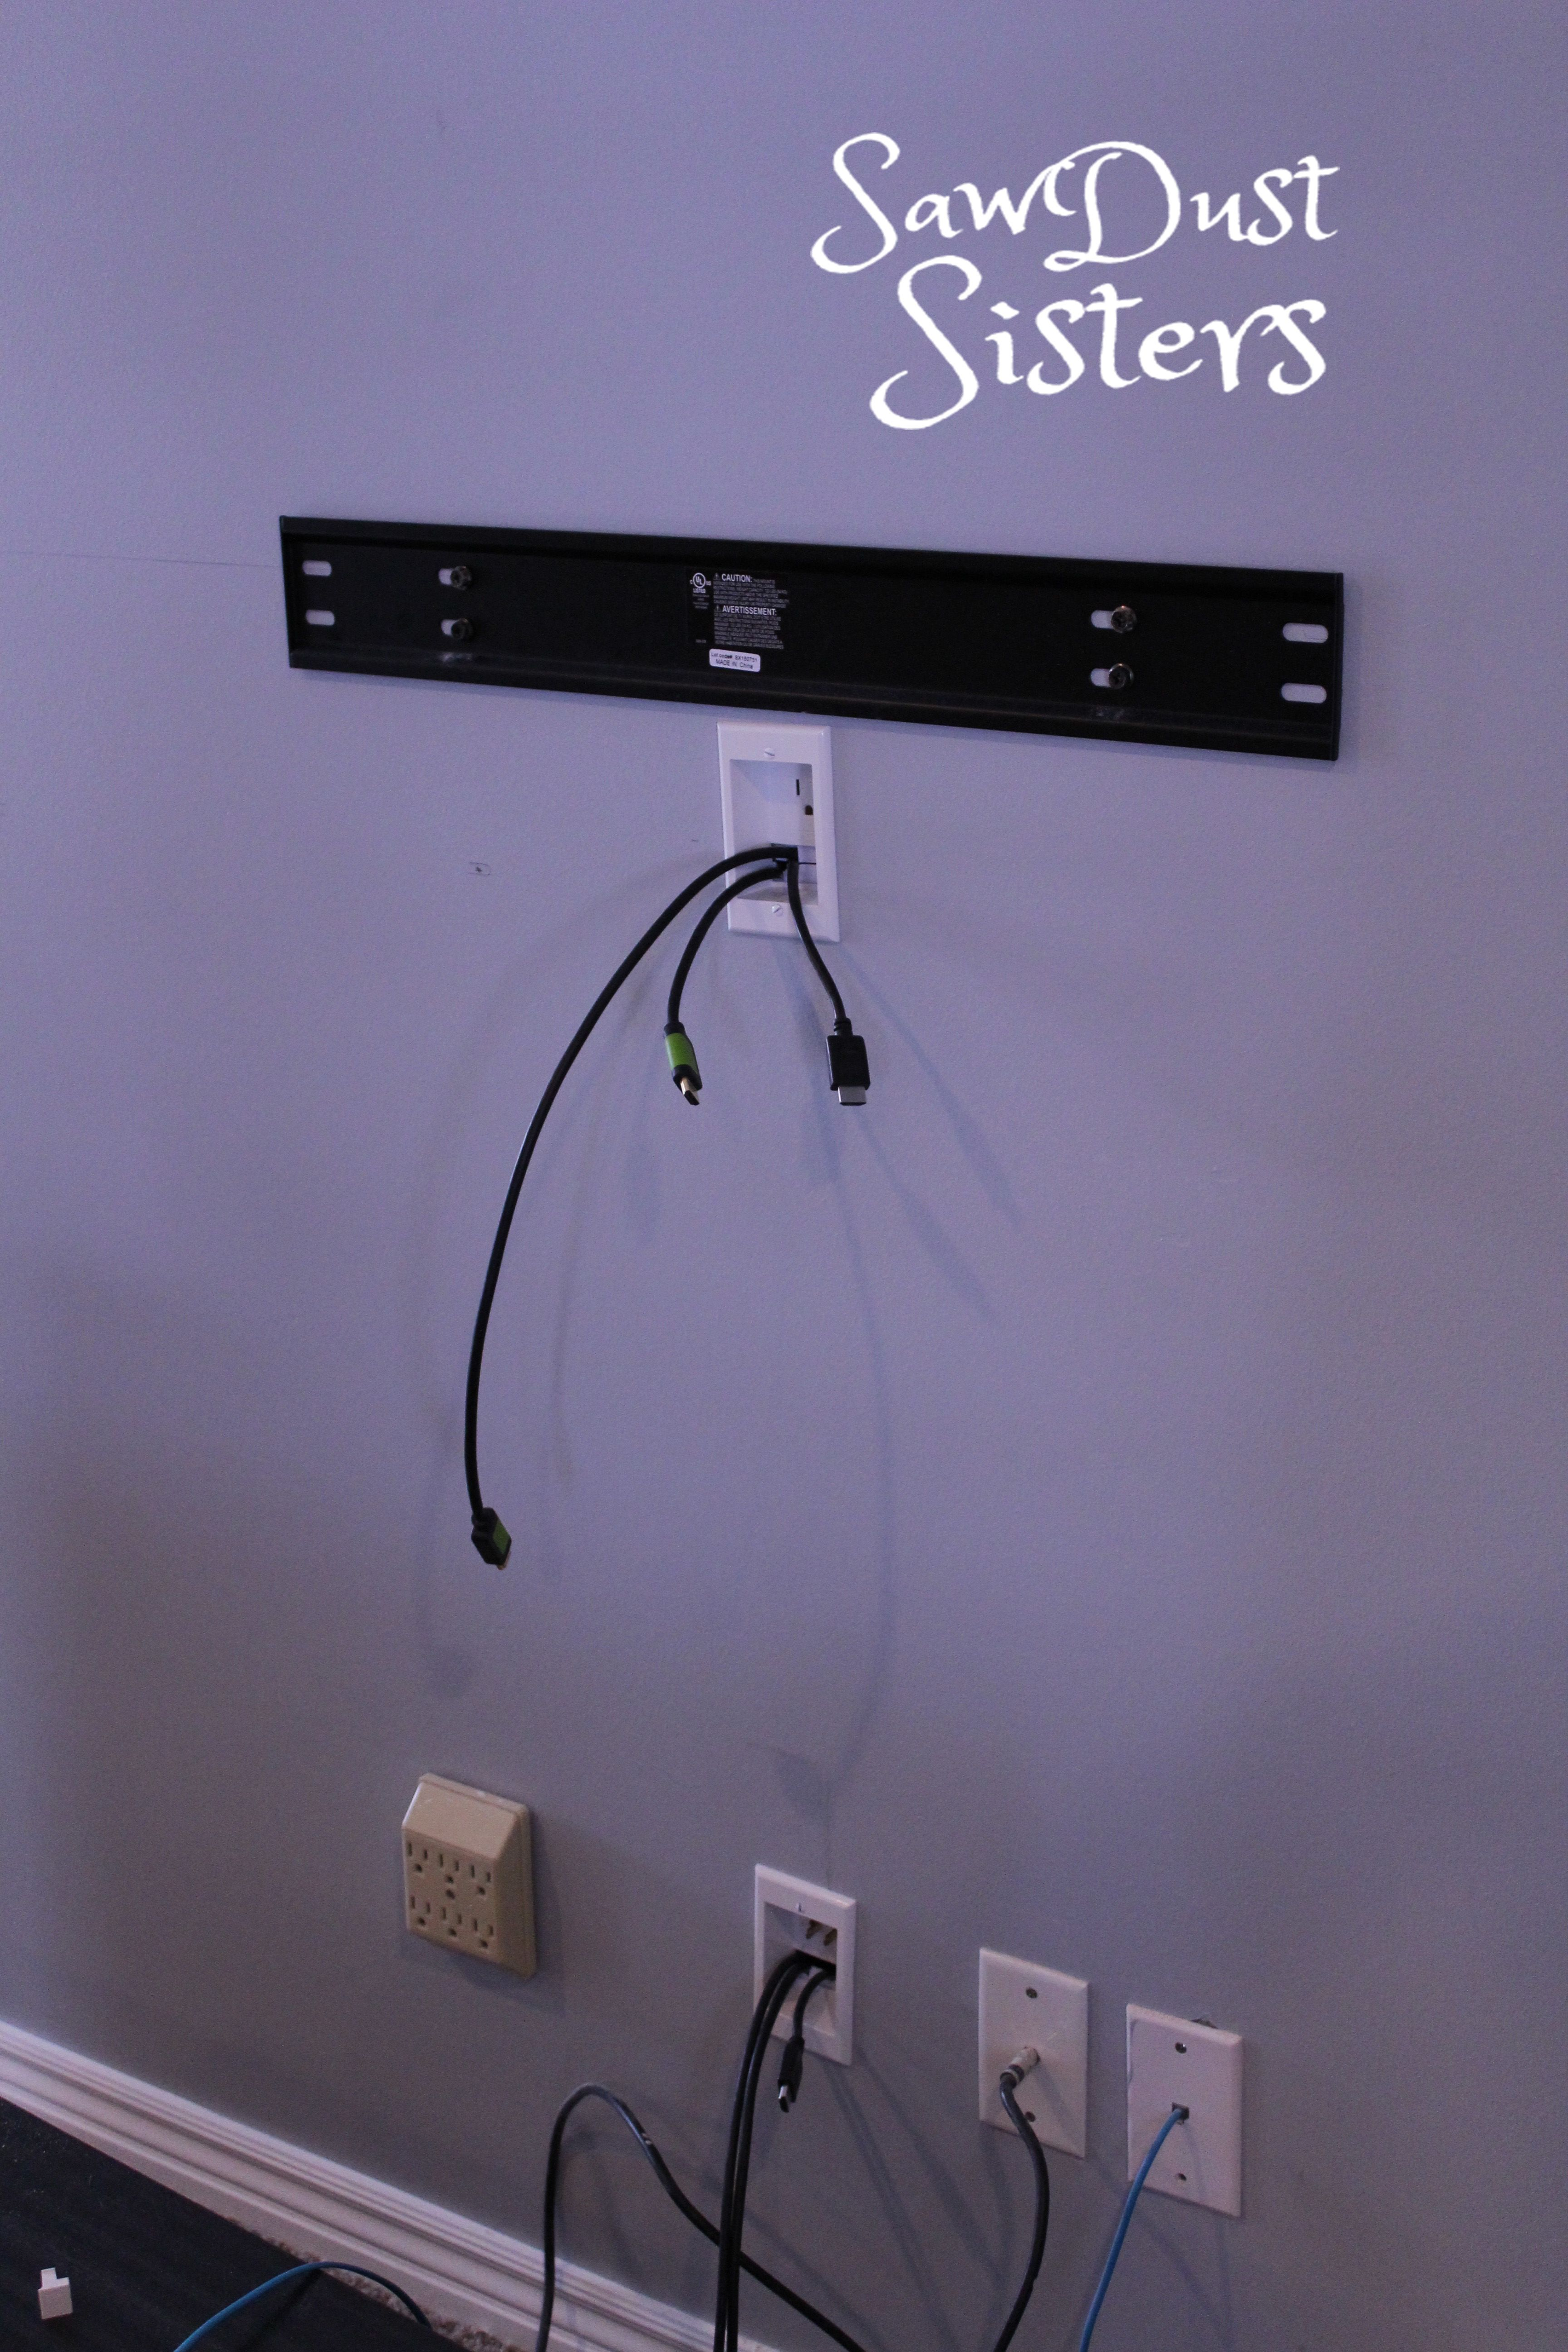 How to mount a flat screen TV and hide cords inside the wall ... Wall Mount Tv Wiring on wall mount tv cables, wall mount tv installation service, wall mount tv drywall, wall mount tv speakers, wall mount tv tools, wall mount tv ductwork, wall mount tv components, wall mount tv frame, wall shelf for cable box, wall mount tv antenna, wall mount telephone wiring, wall tv wire cover, wall mount tv controller, cable tv wiring, wall mount tv accessories, wall mount tv framing, wall switch wiring, wall mount tv cabling, wall mountable computer monitors, wall mount tv outlets,